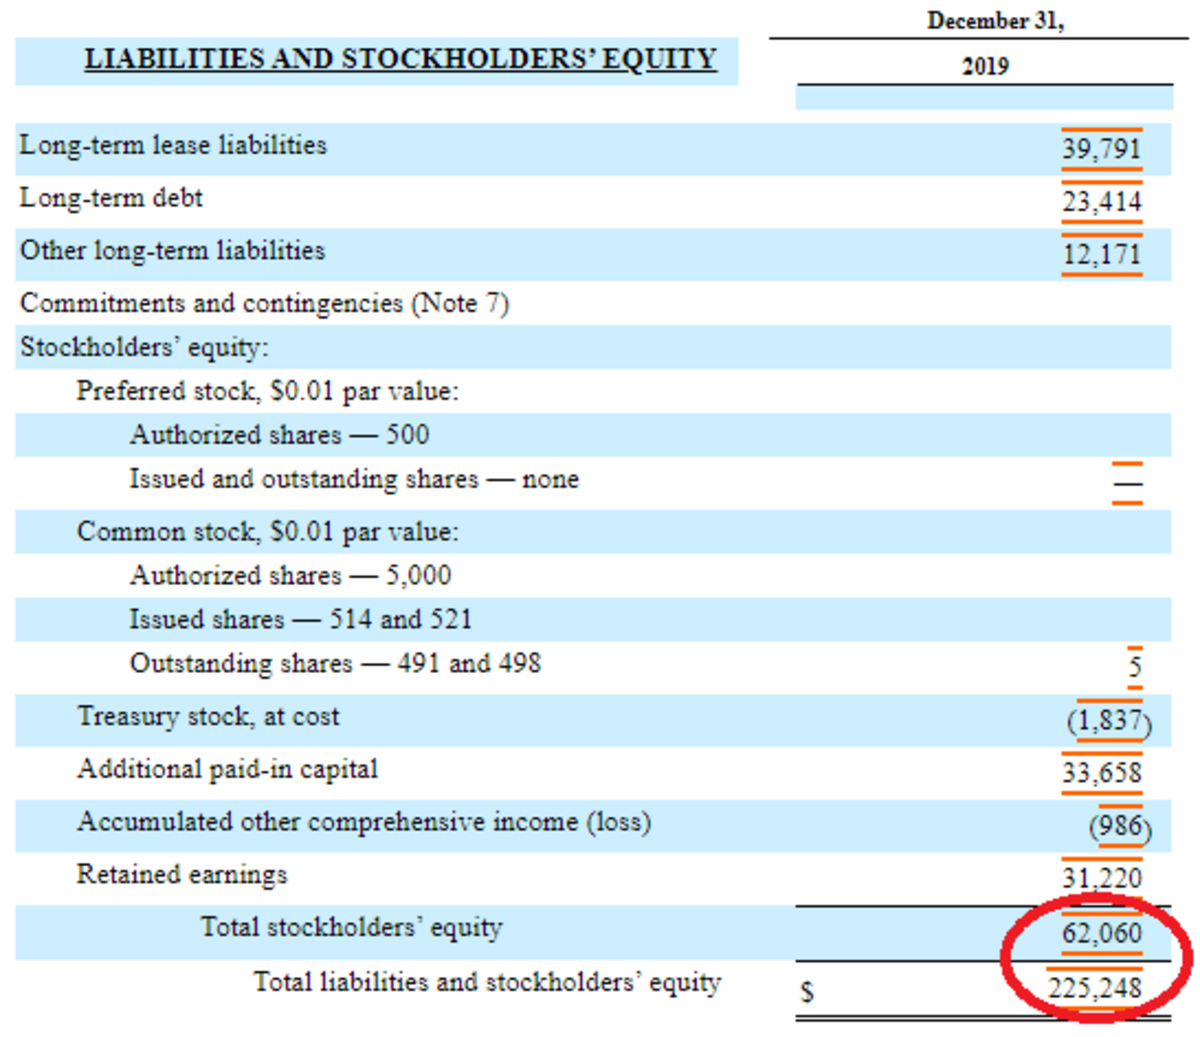 Amazon's complete fiscal year balance sheet can be found on the Security and Exchange Commission's website. The total debt can be found here by subtracting equity from total liabilities and stockholders' equity.